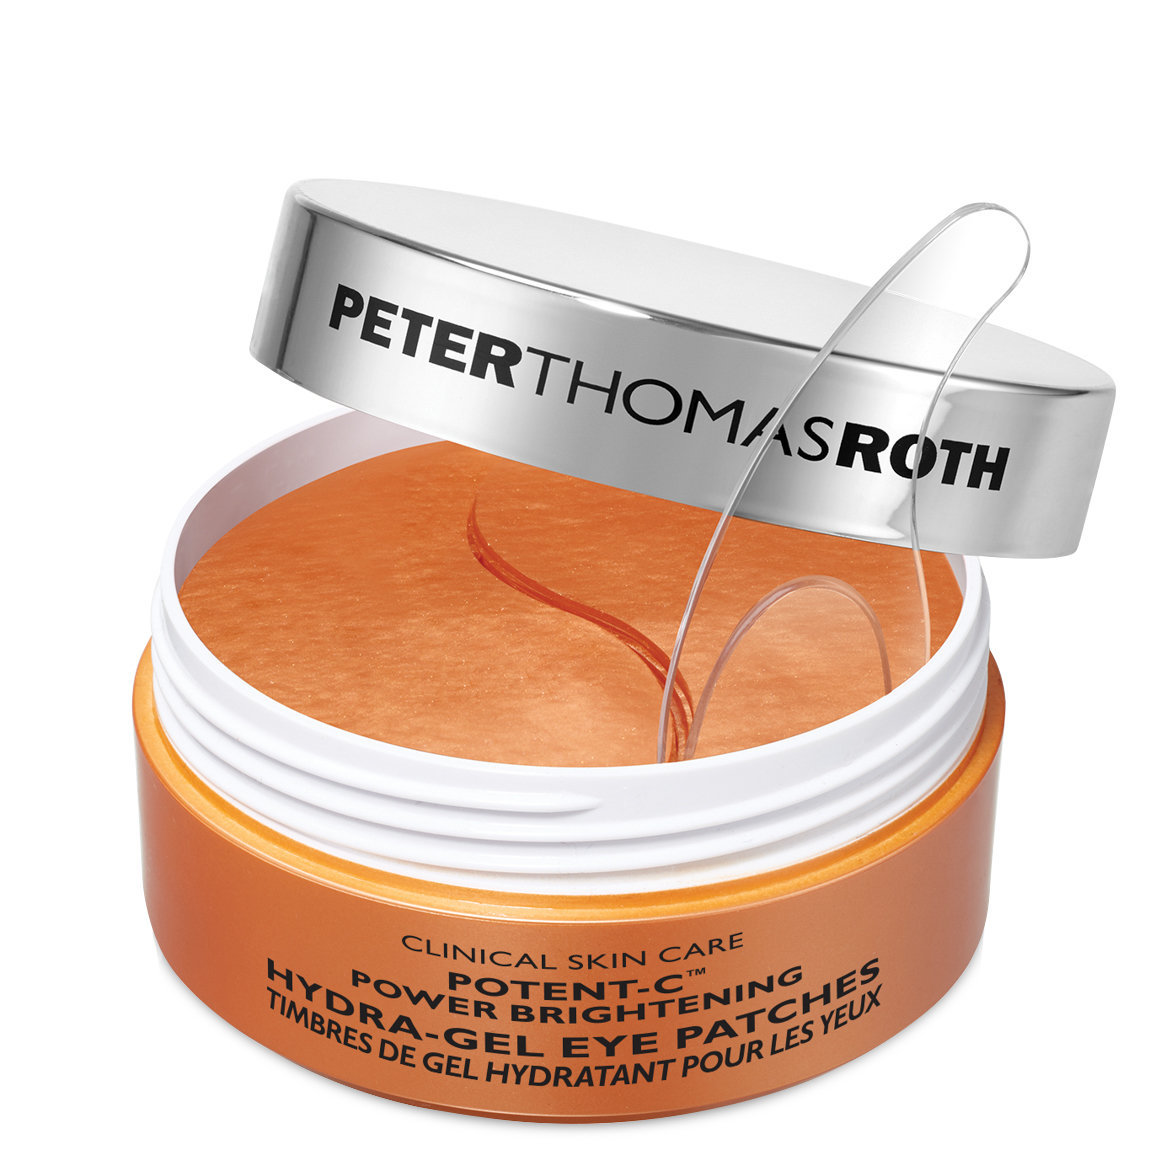 Peter Thomas Roth Potent-C Power Brightening Hydra-Gel Eye Patches alternative view 1 - product swatch.